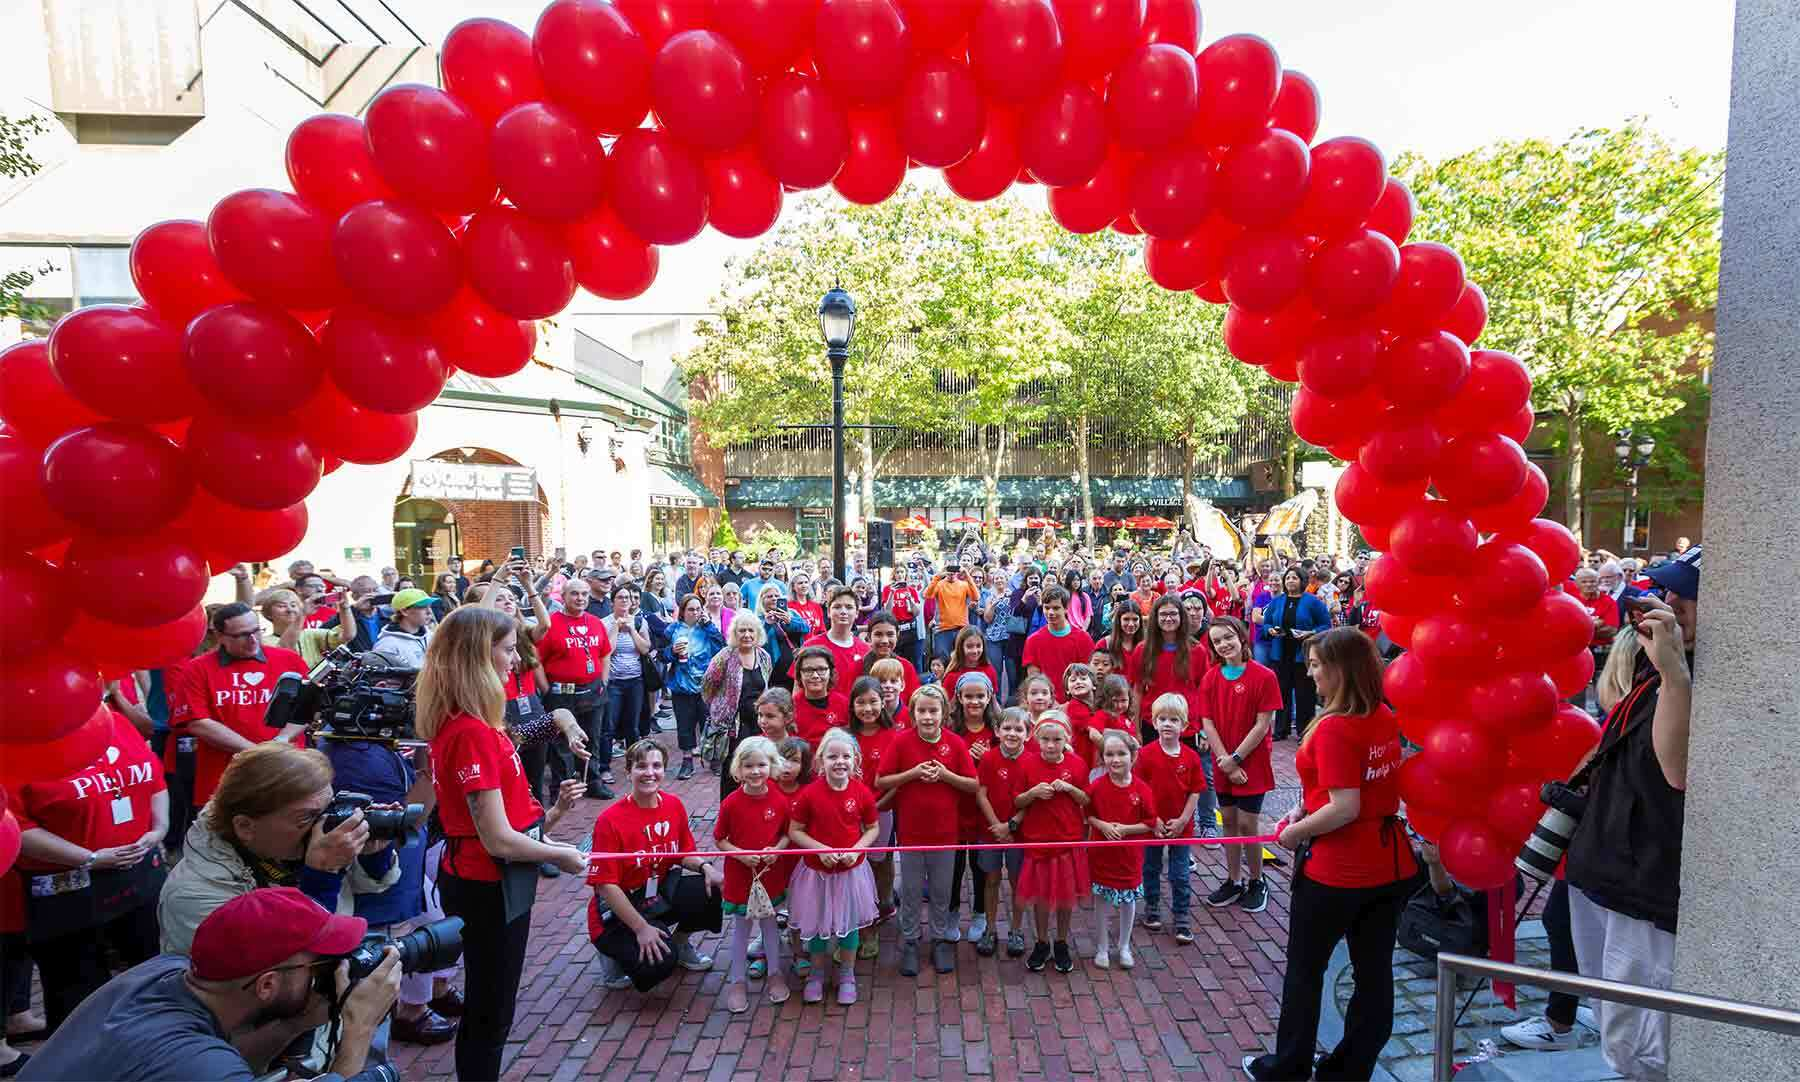 A crowd of people waiting to enter a building under a banner of red ballons